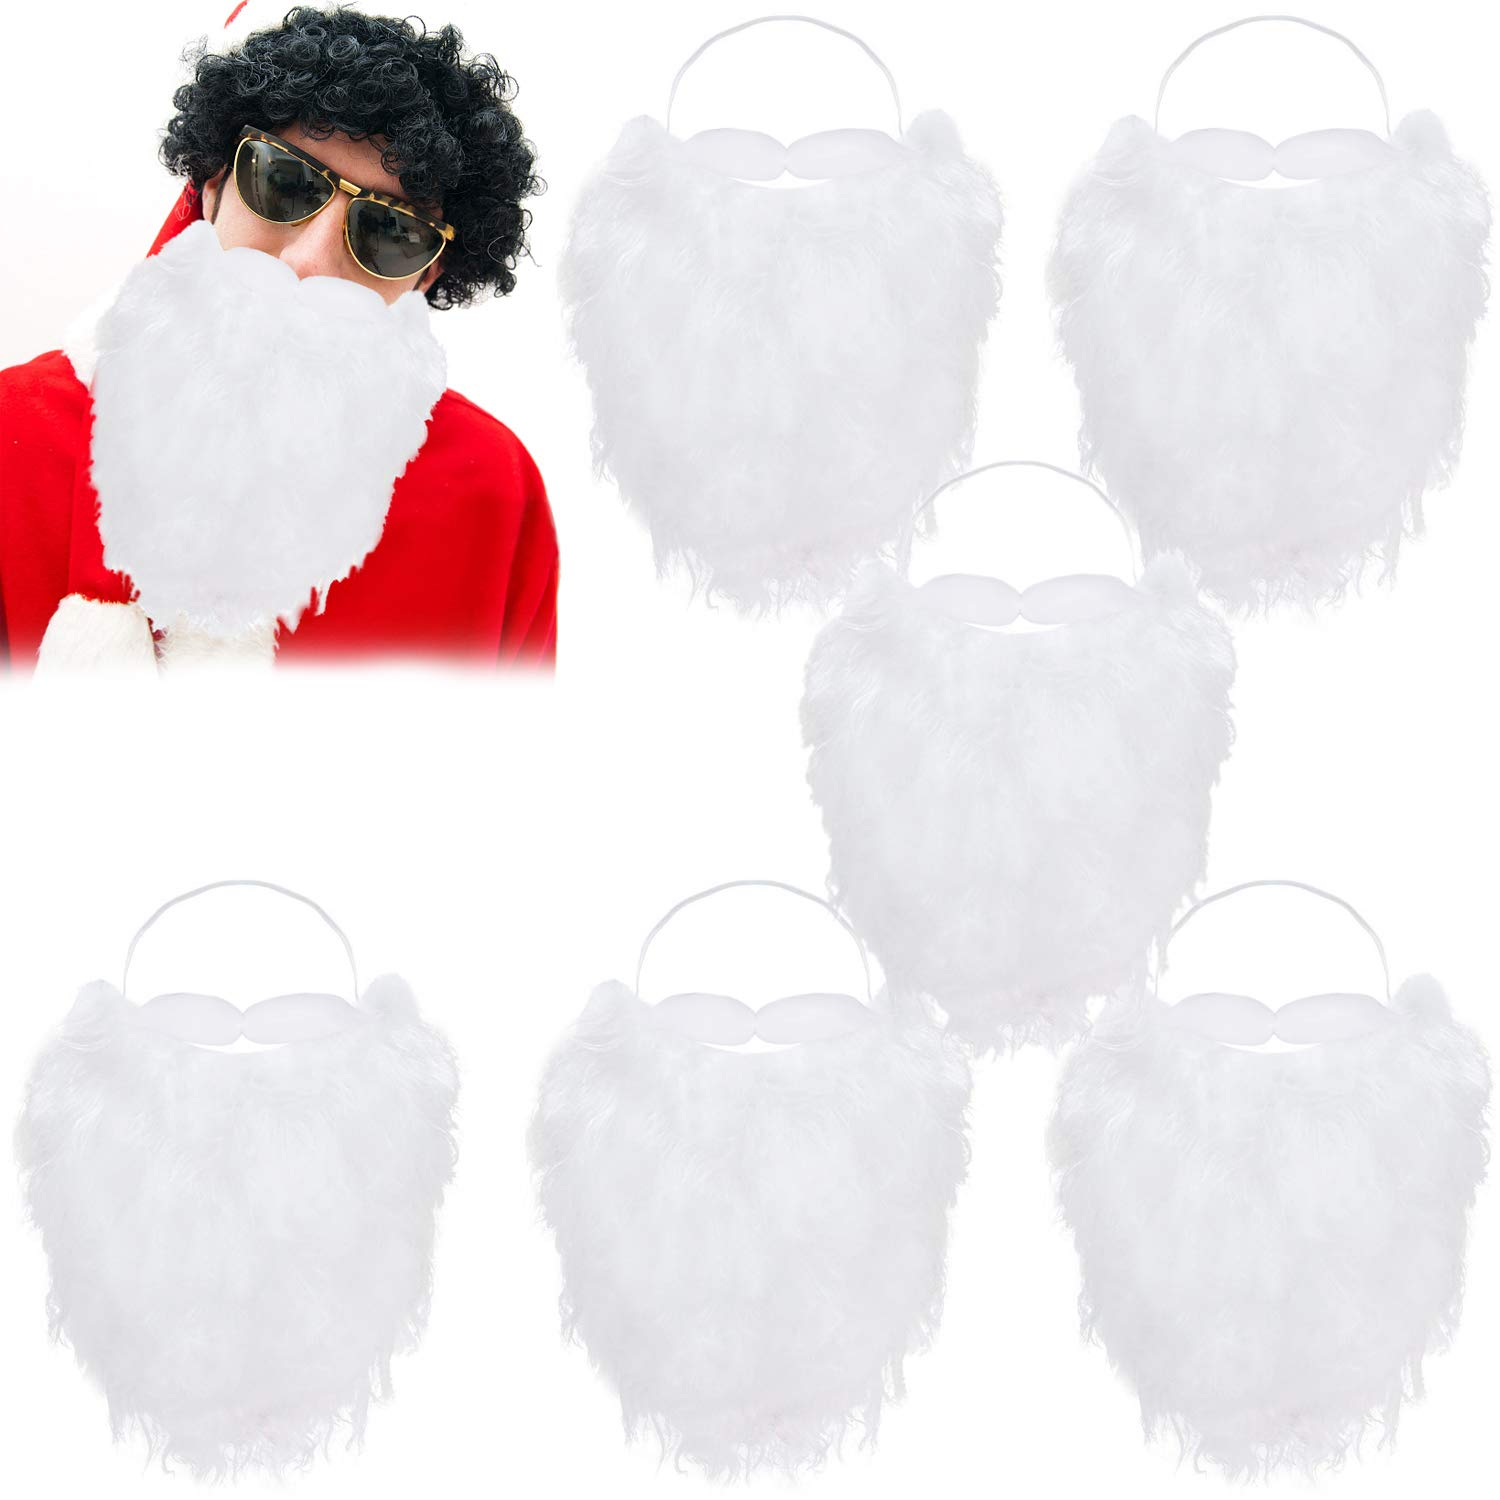 Winrase 6pcs Santa Beard Costume Christmas Santa Claus Beard White Fake Beard Christmas Party Festive Dress Up Accessories for Adult Kids Child